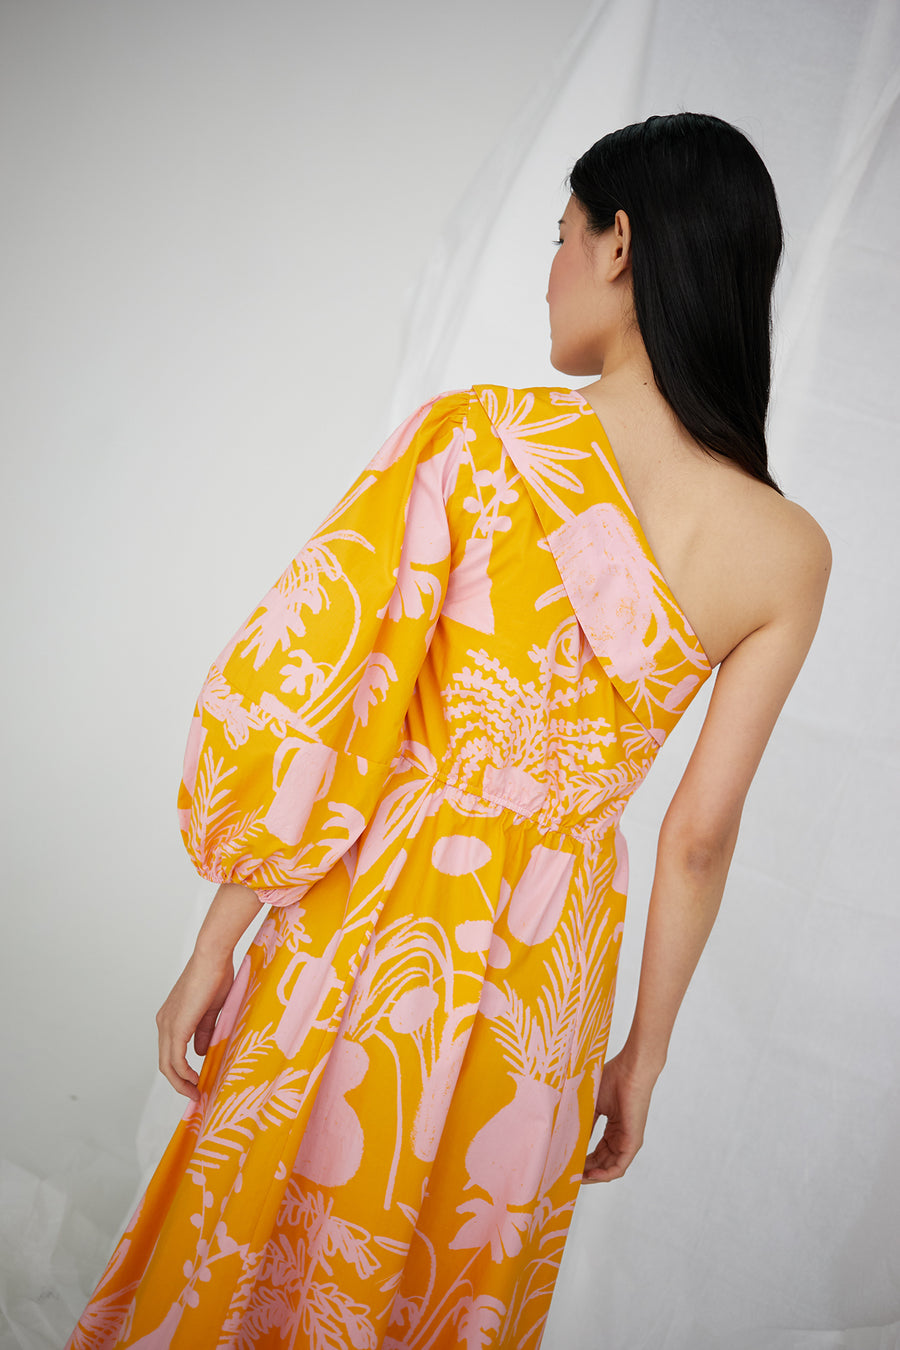 Paige Dress in Potted Plant Print Orange/Pink